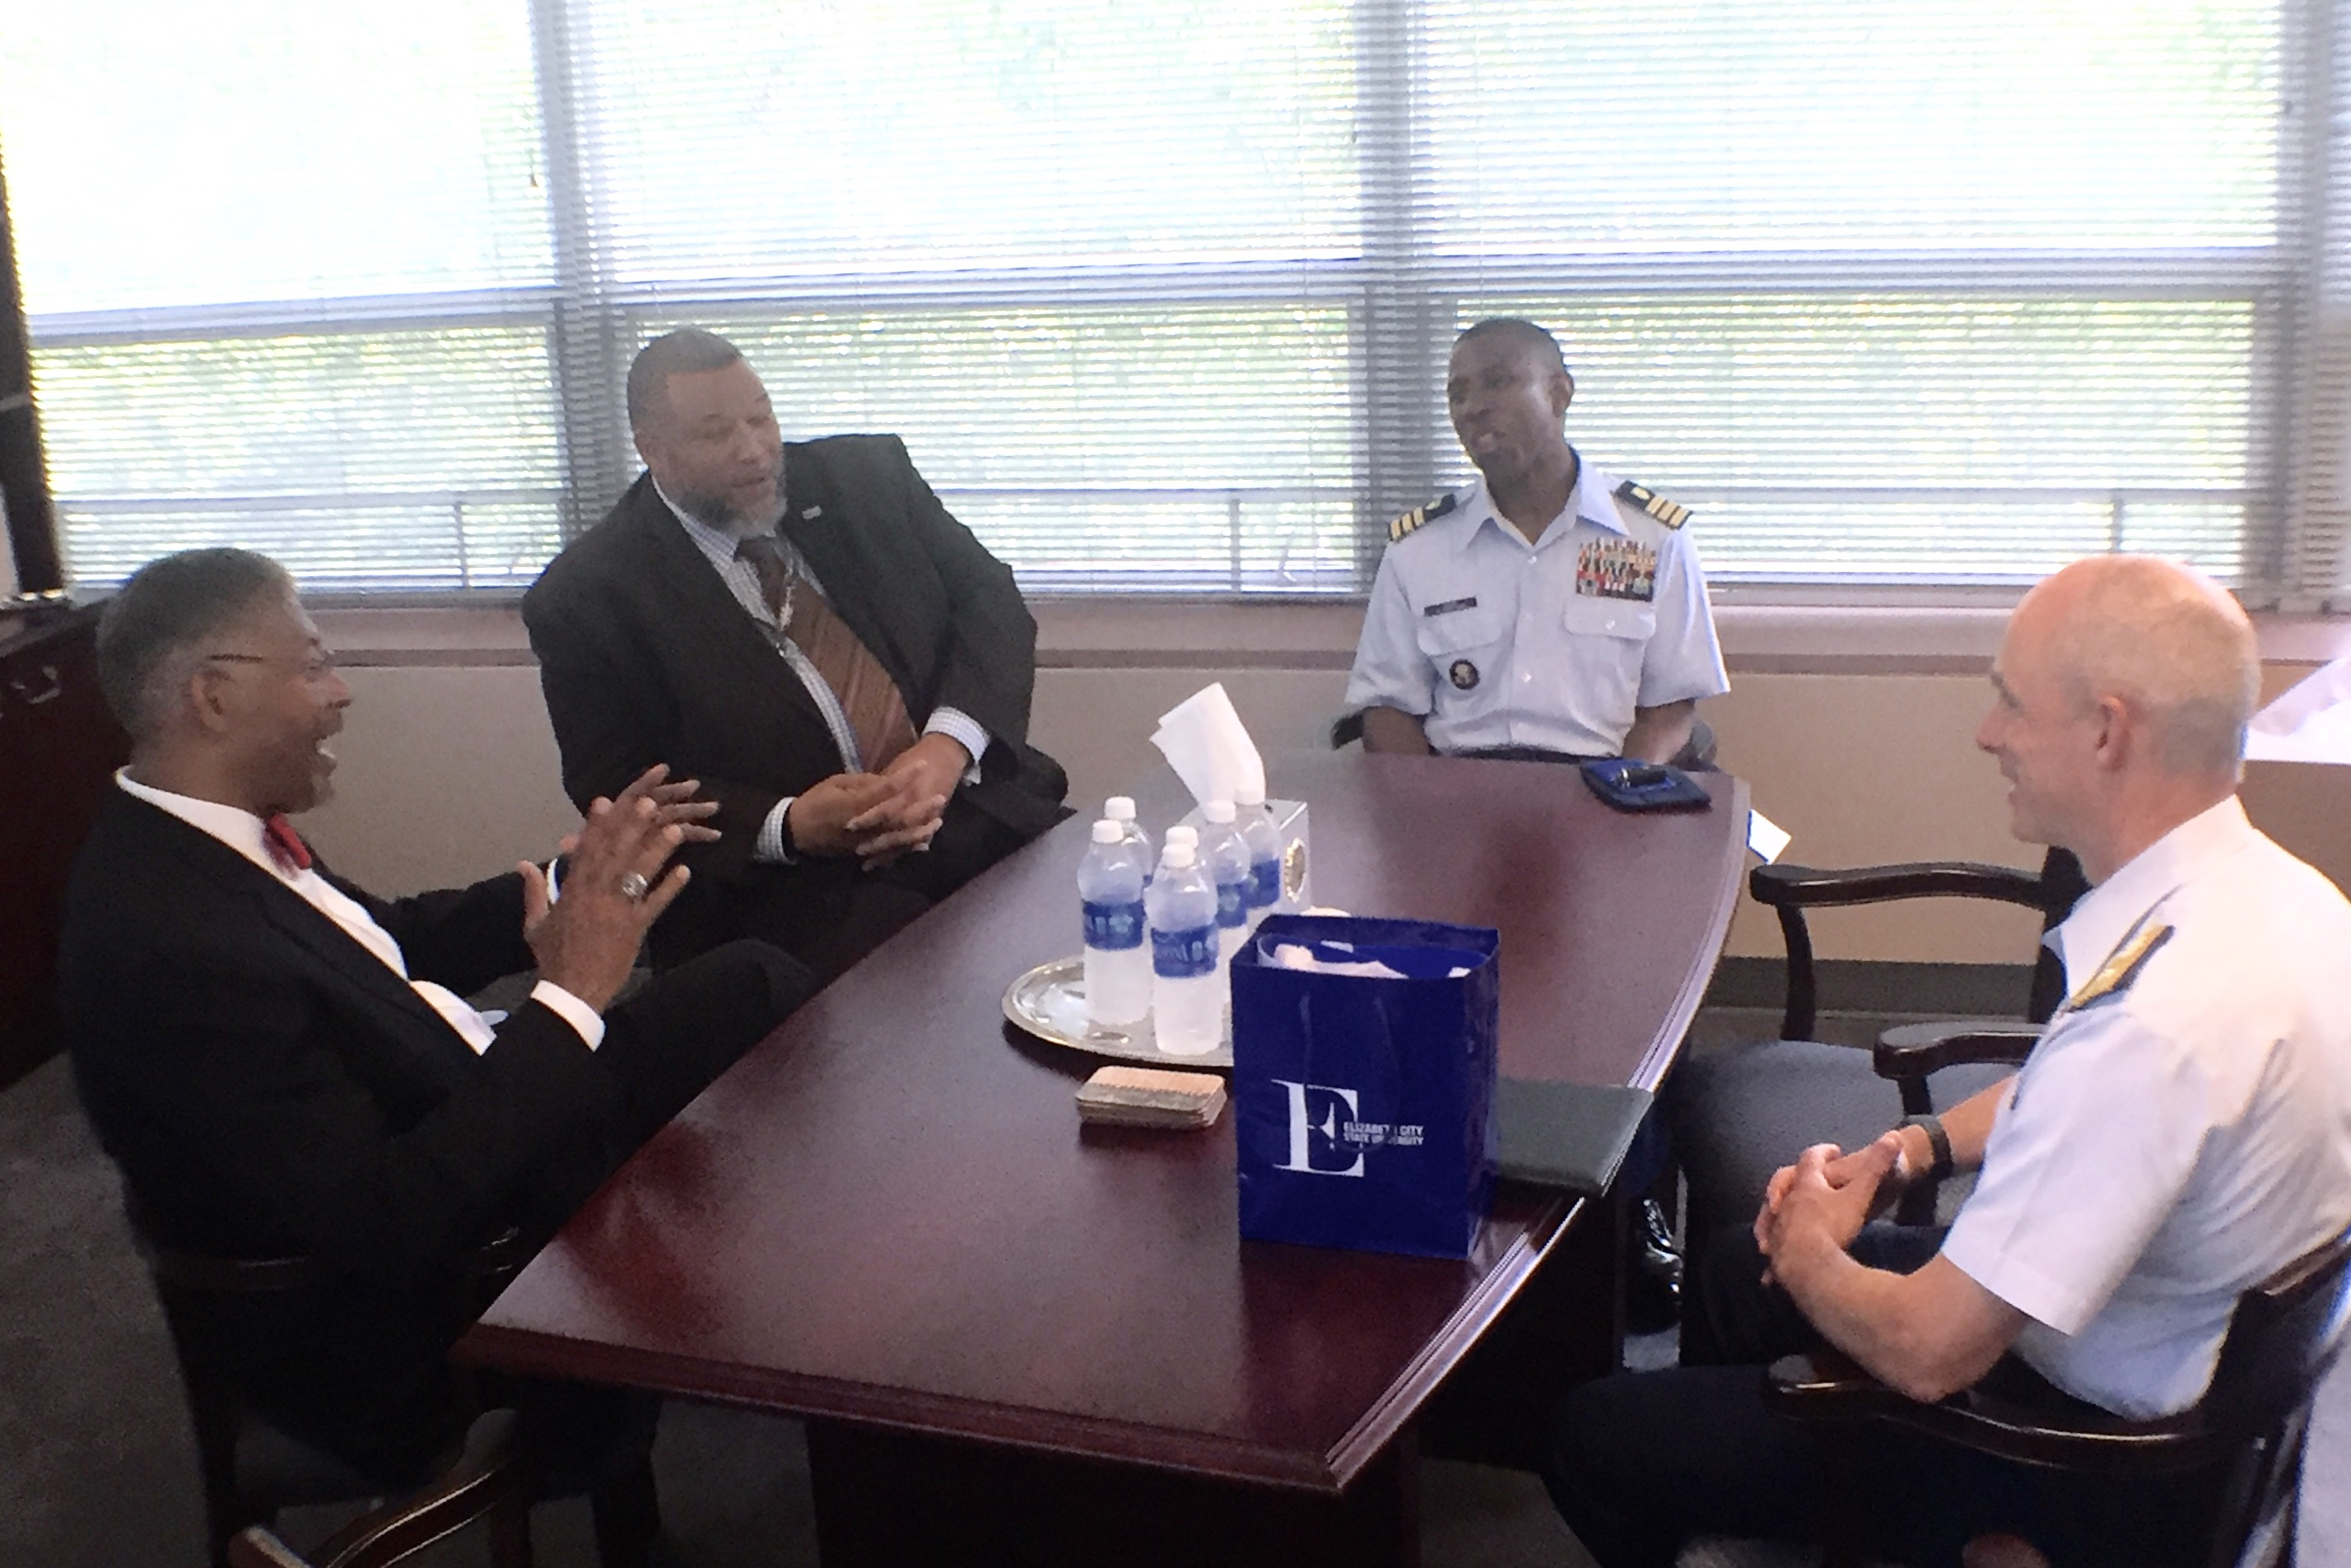 Adm. Bill Kelly visits with chancellor